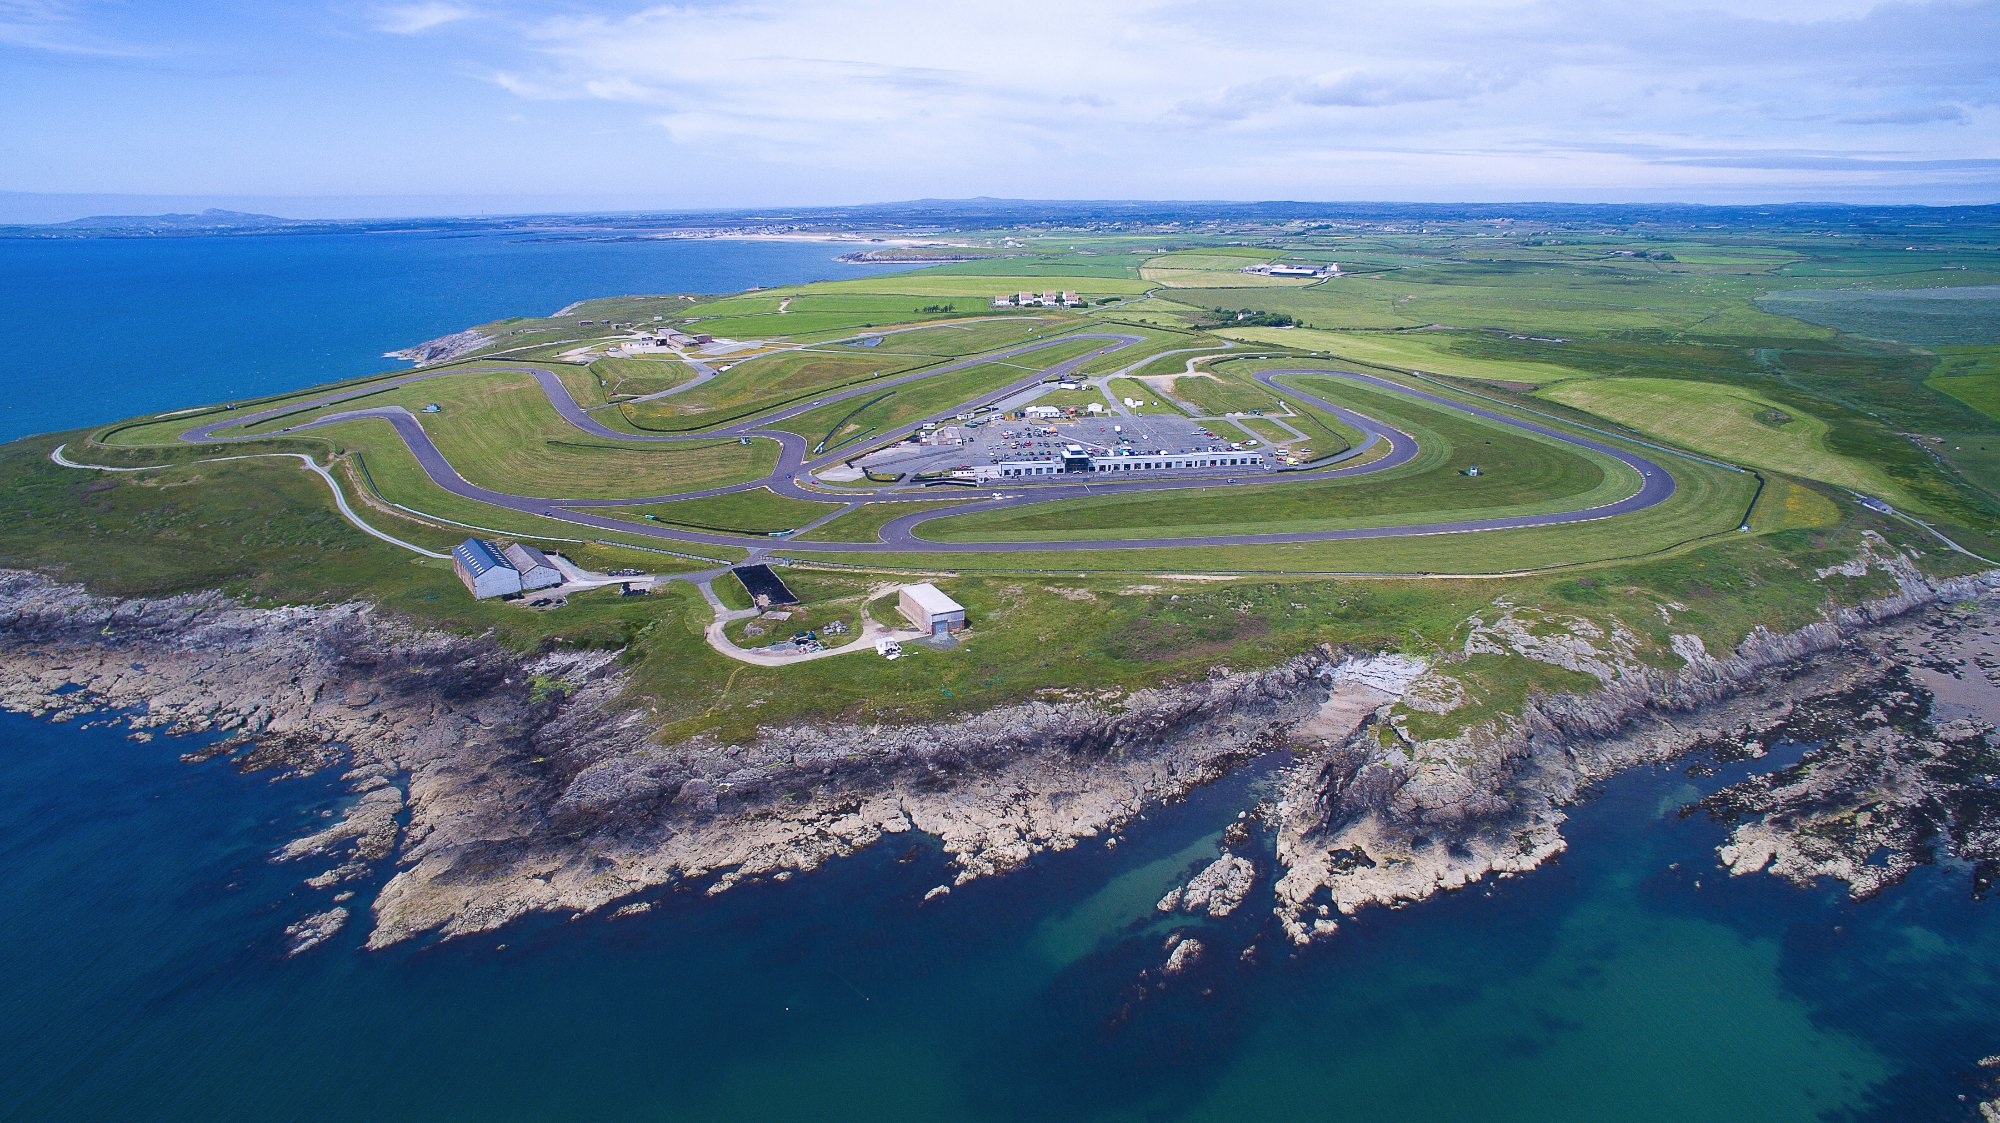 Angelesey Circuit located in Ty Croes, Anglesey, Wales.